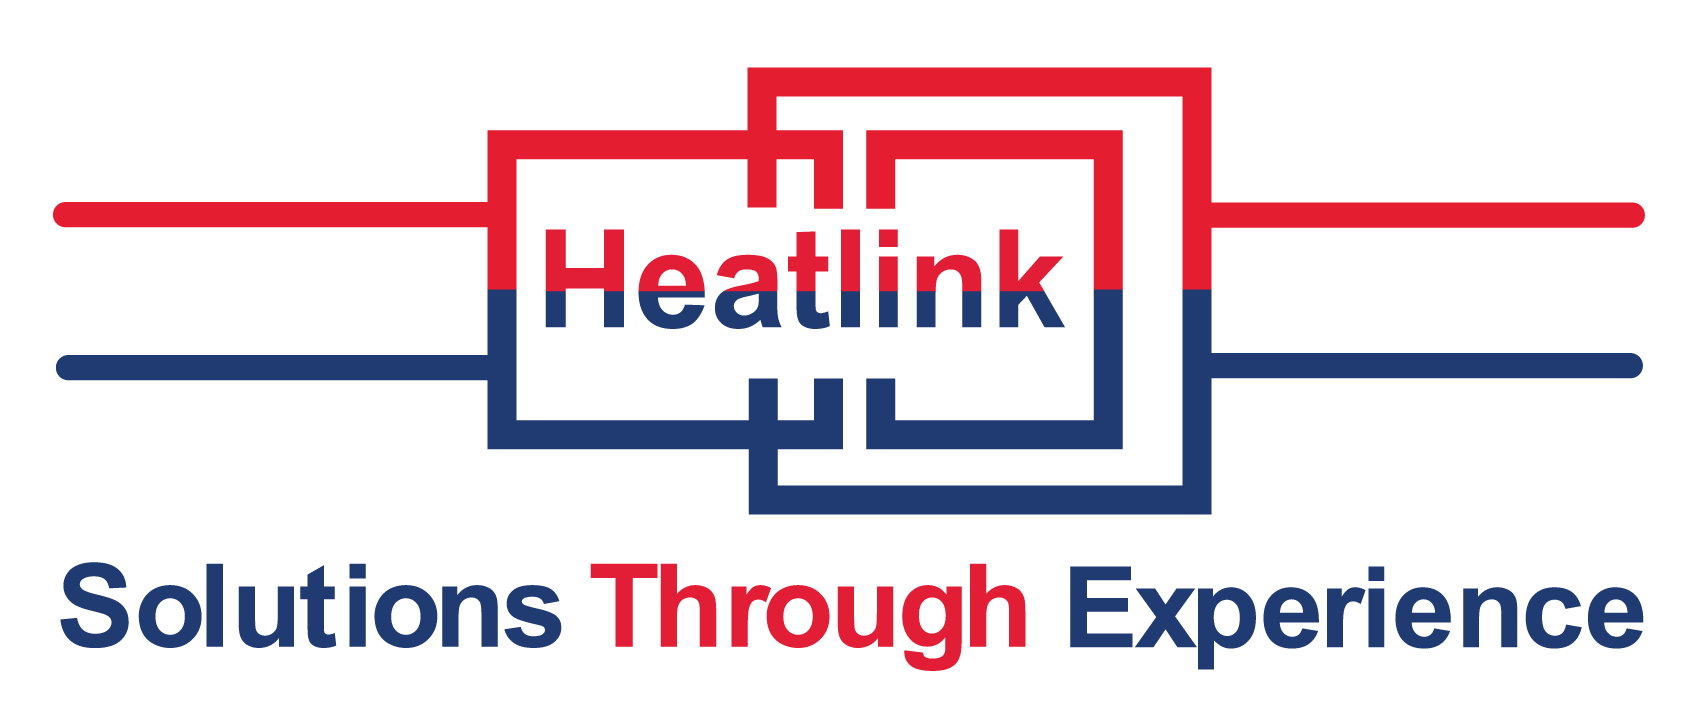 HEATLINK LOGO - Maintenance & Spares